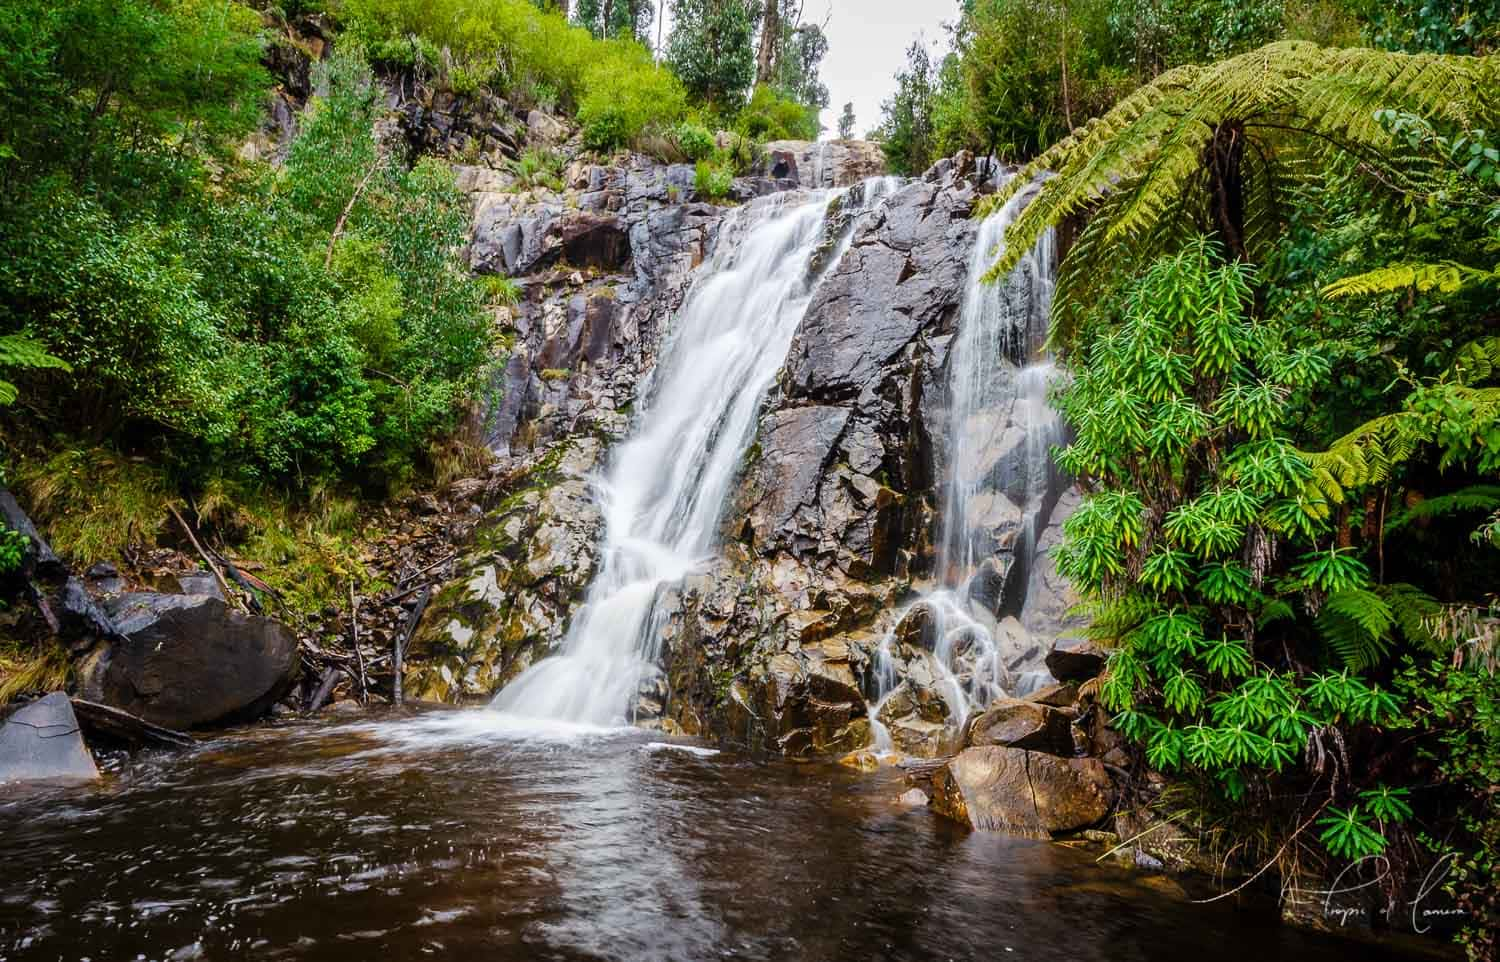 Stevenson's Falls, just outside of Marysville